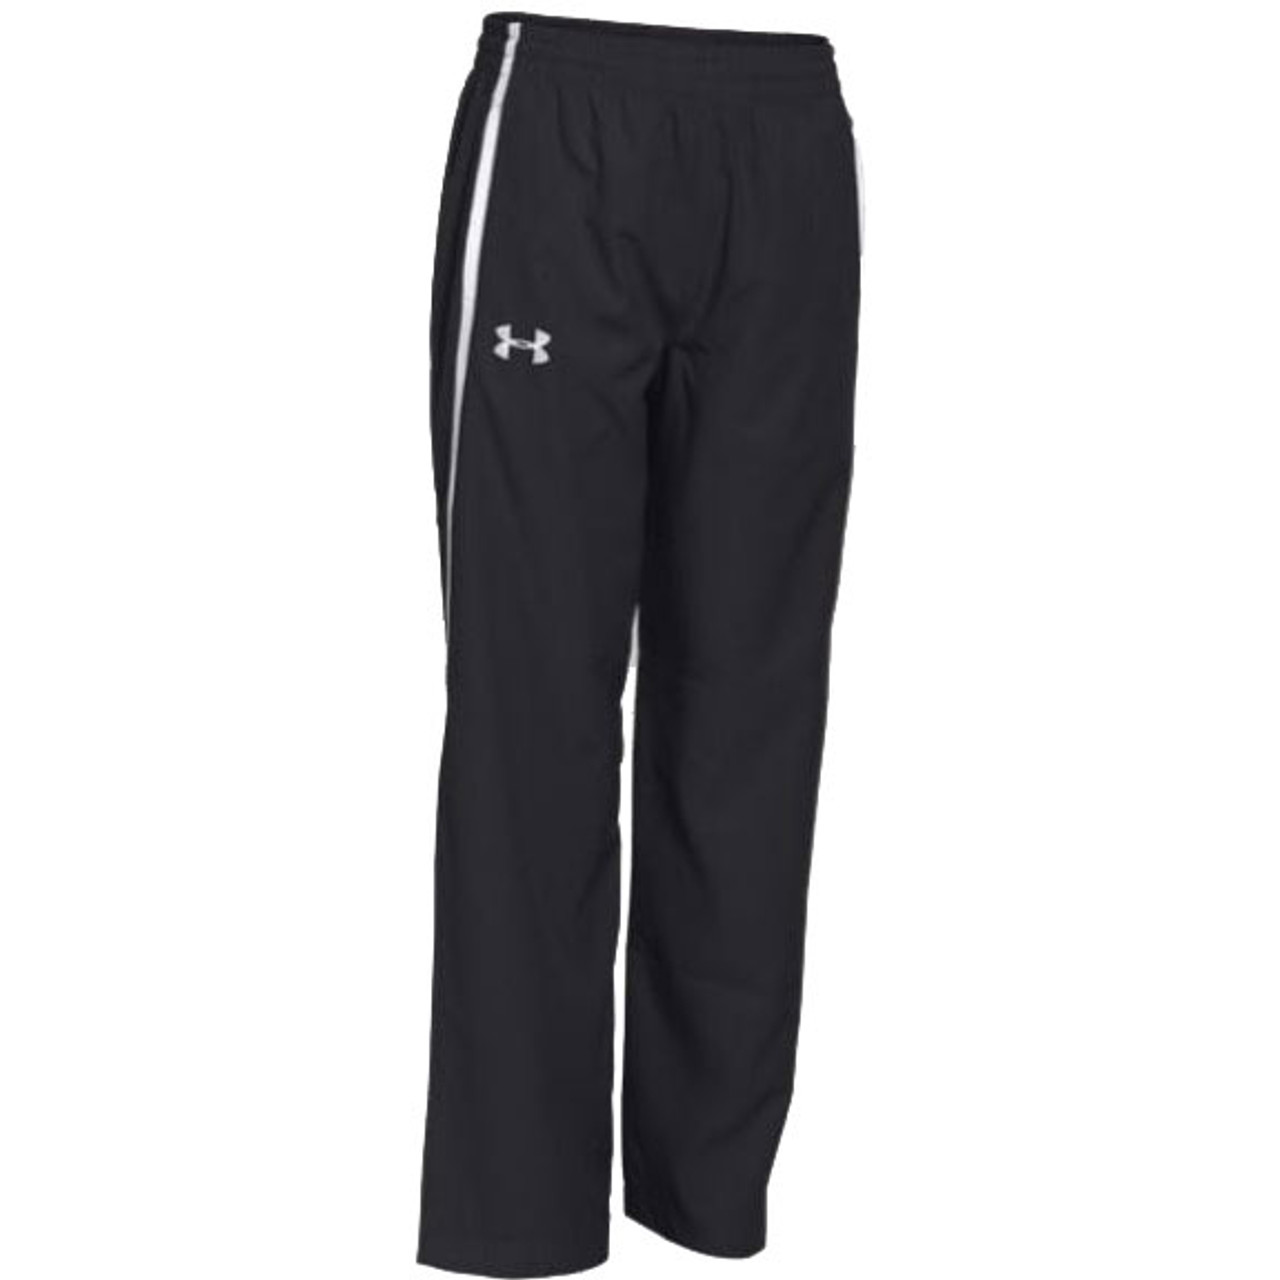 Under Armour Women/'s Loose Fit Sweatpants New NWT 1225775 Team Fleece Training